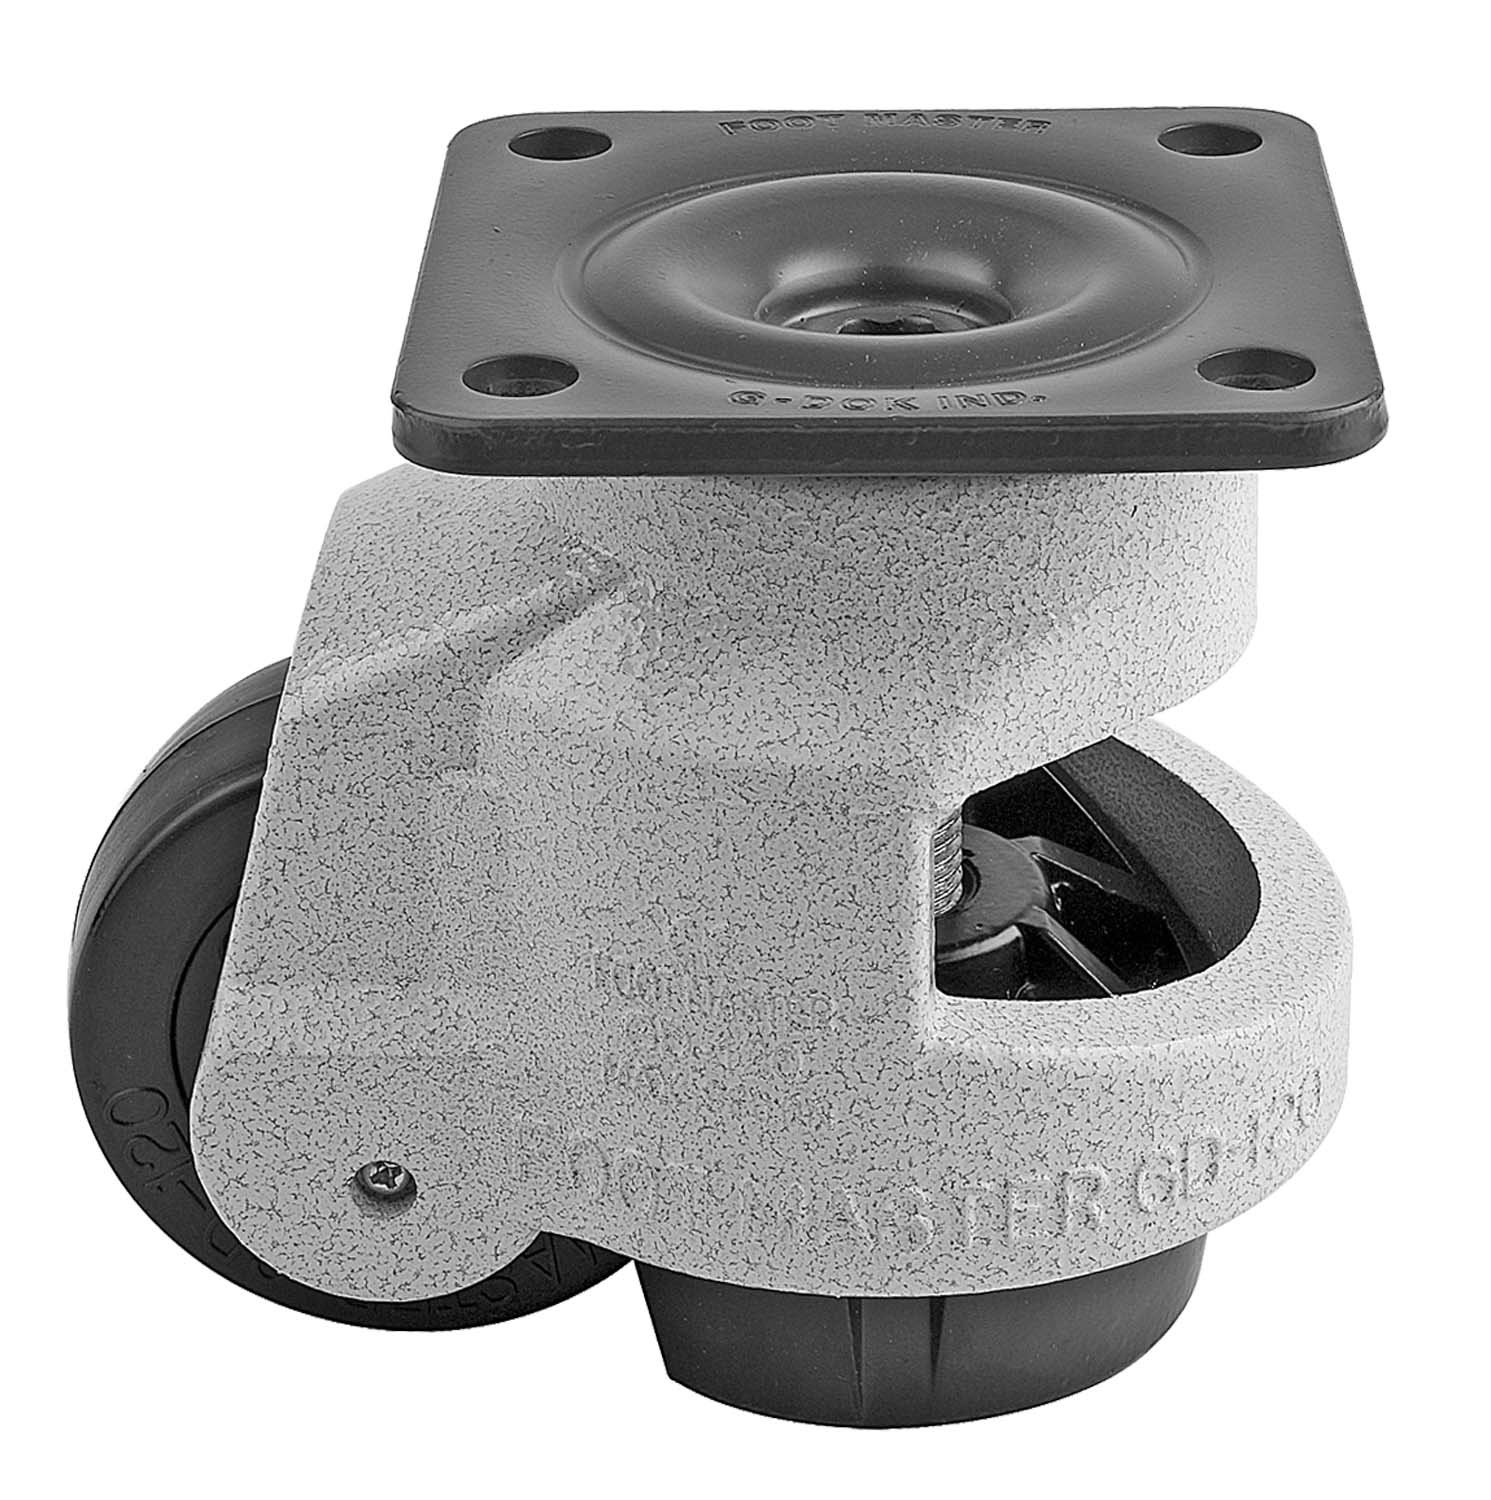 FOOTMASTER GD-120F Nylon Wheel and Aluminum Pad Leveling Caster, 2200 lbs, Top Plate 3 3/4'' x 3 3/4'', Bolt Holes 2 3/4'' x 2 3/4'', Ivory Finish